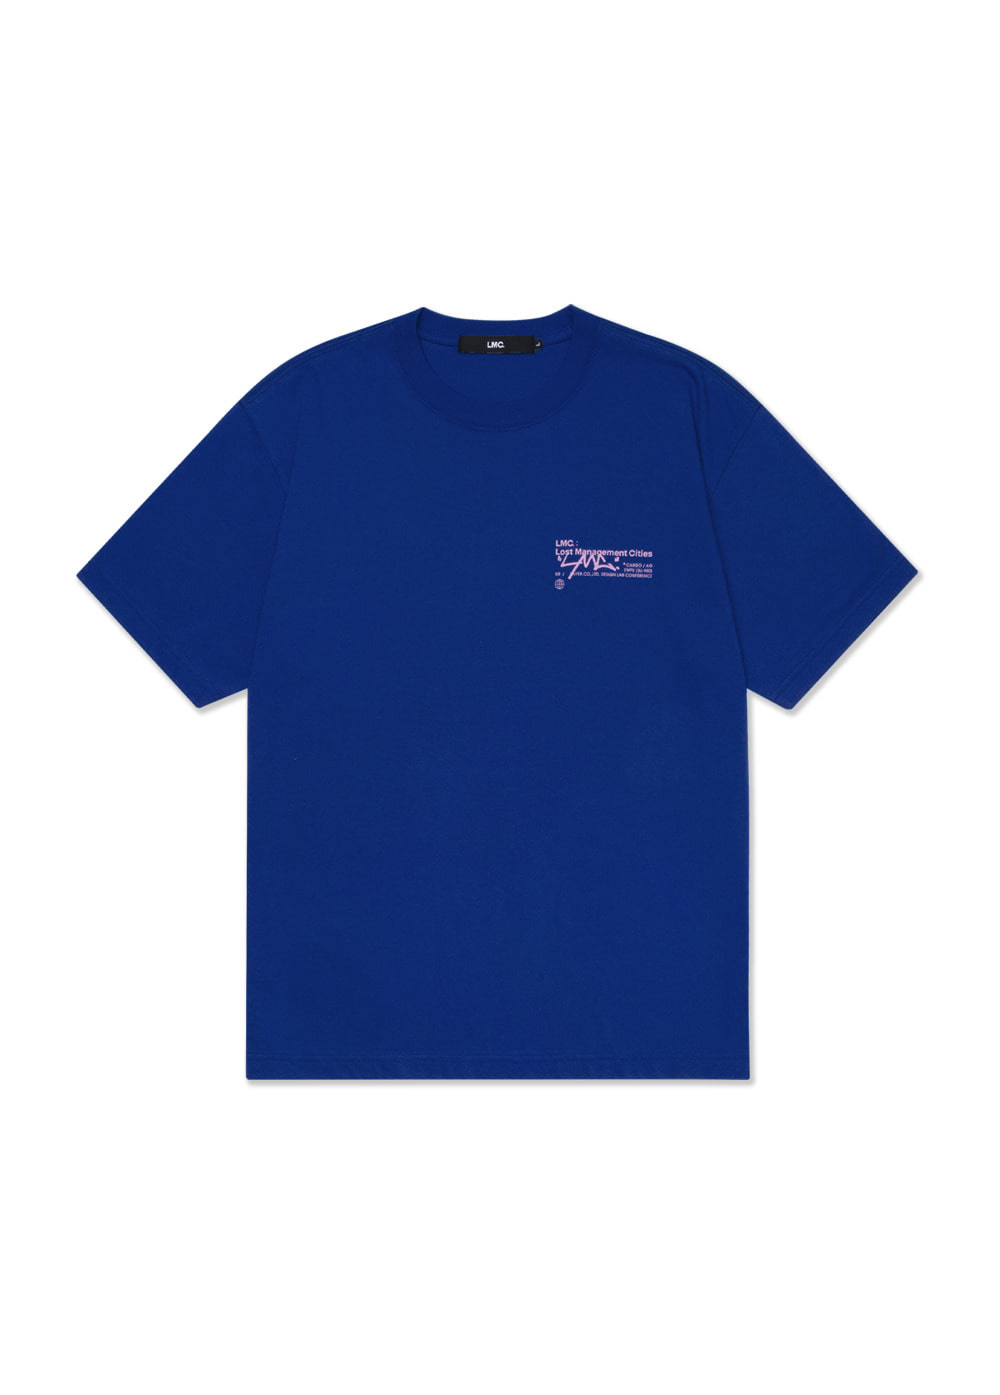 LMC SIGNATURE TEE royal blue